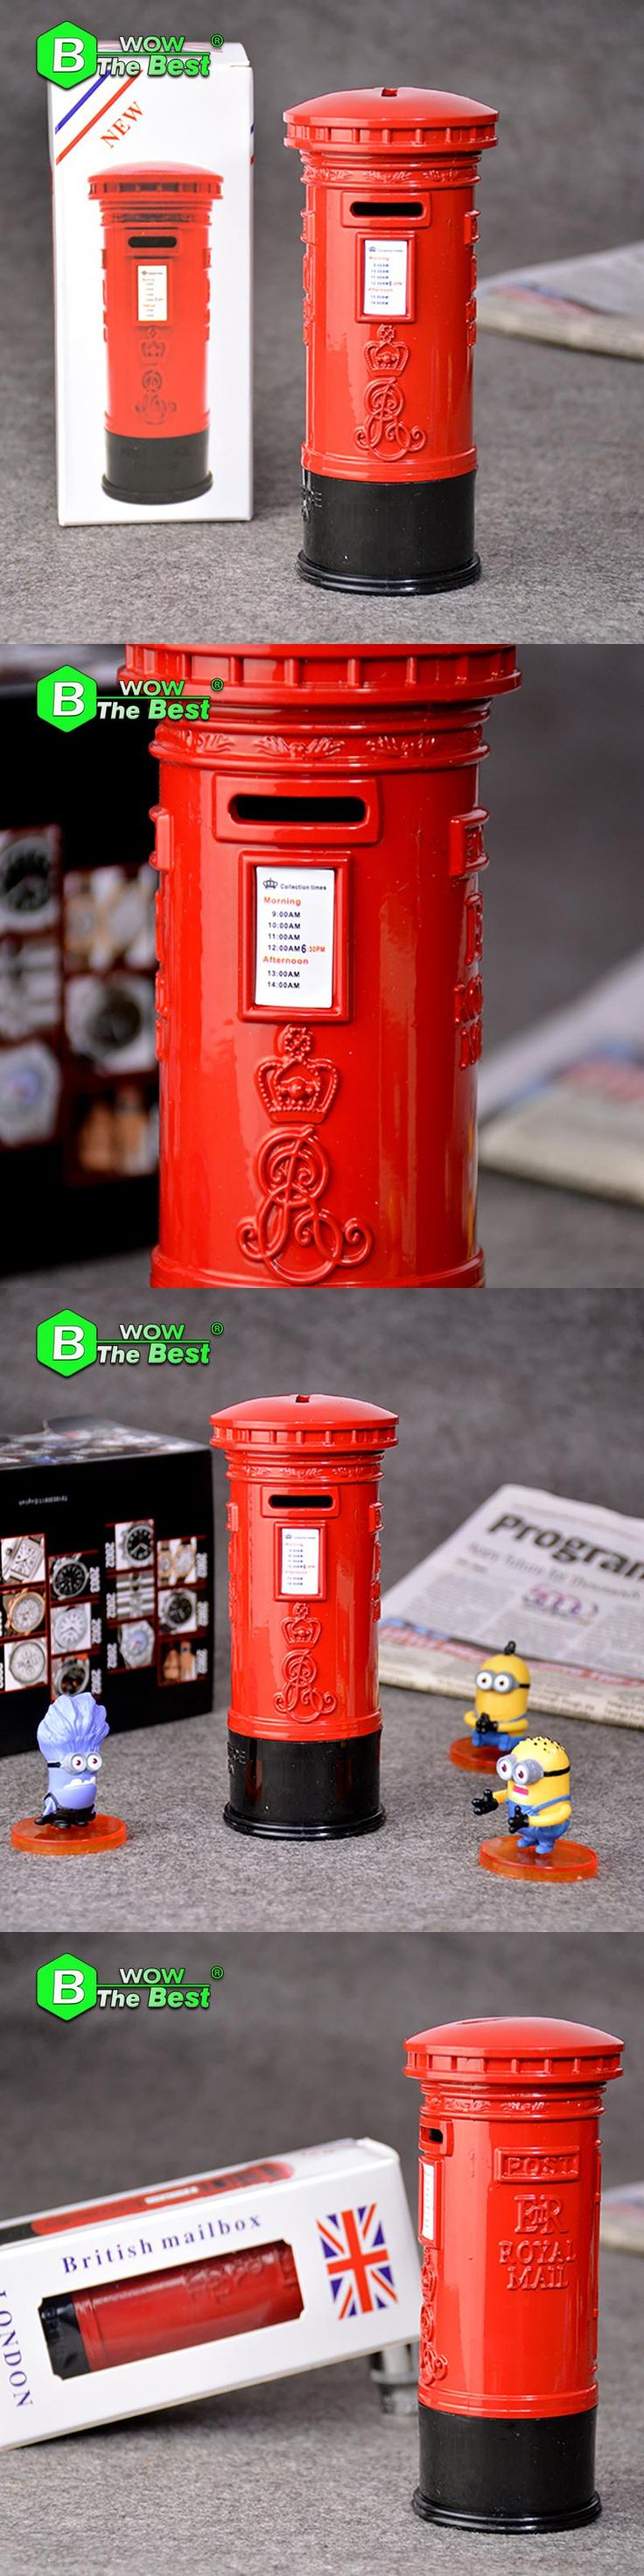 1pc 14.5*5.5cm Red Mailbox Metal Model Money Boxes Home Decoration Room Crafts Decoration Piggy Bank Creative Gift Money Bank